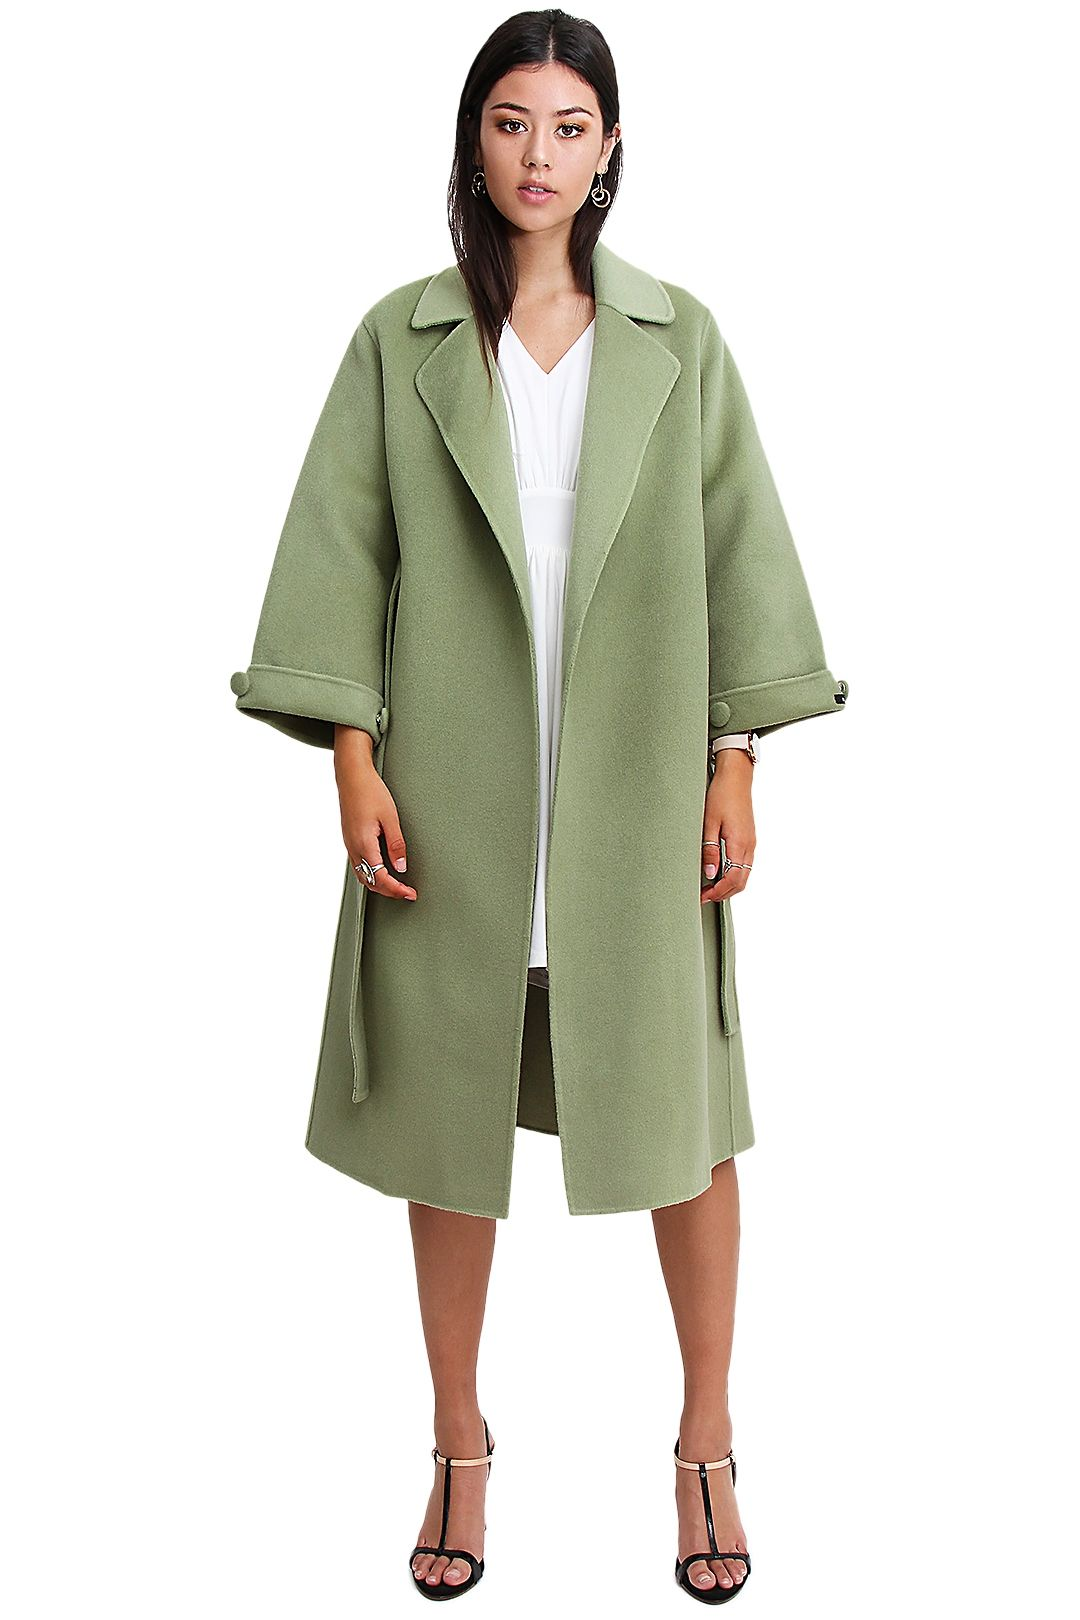 Belle and Bloom Stay Wild Coat Green